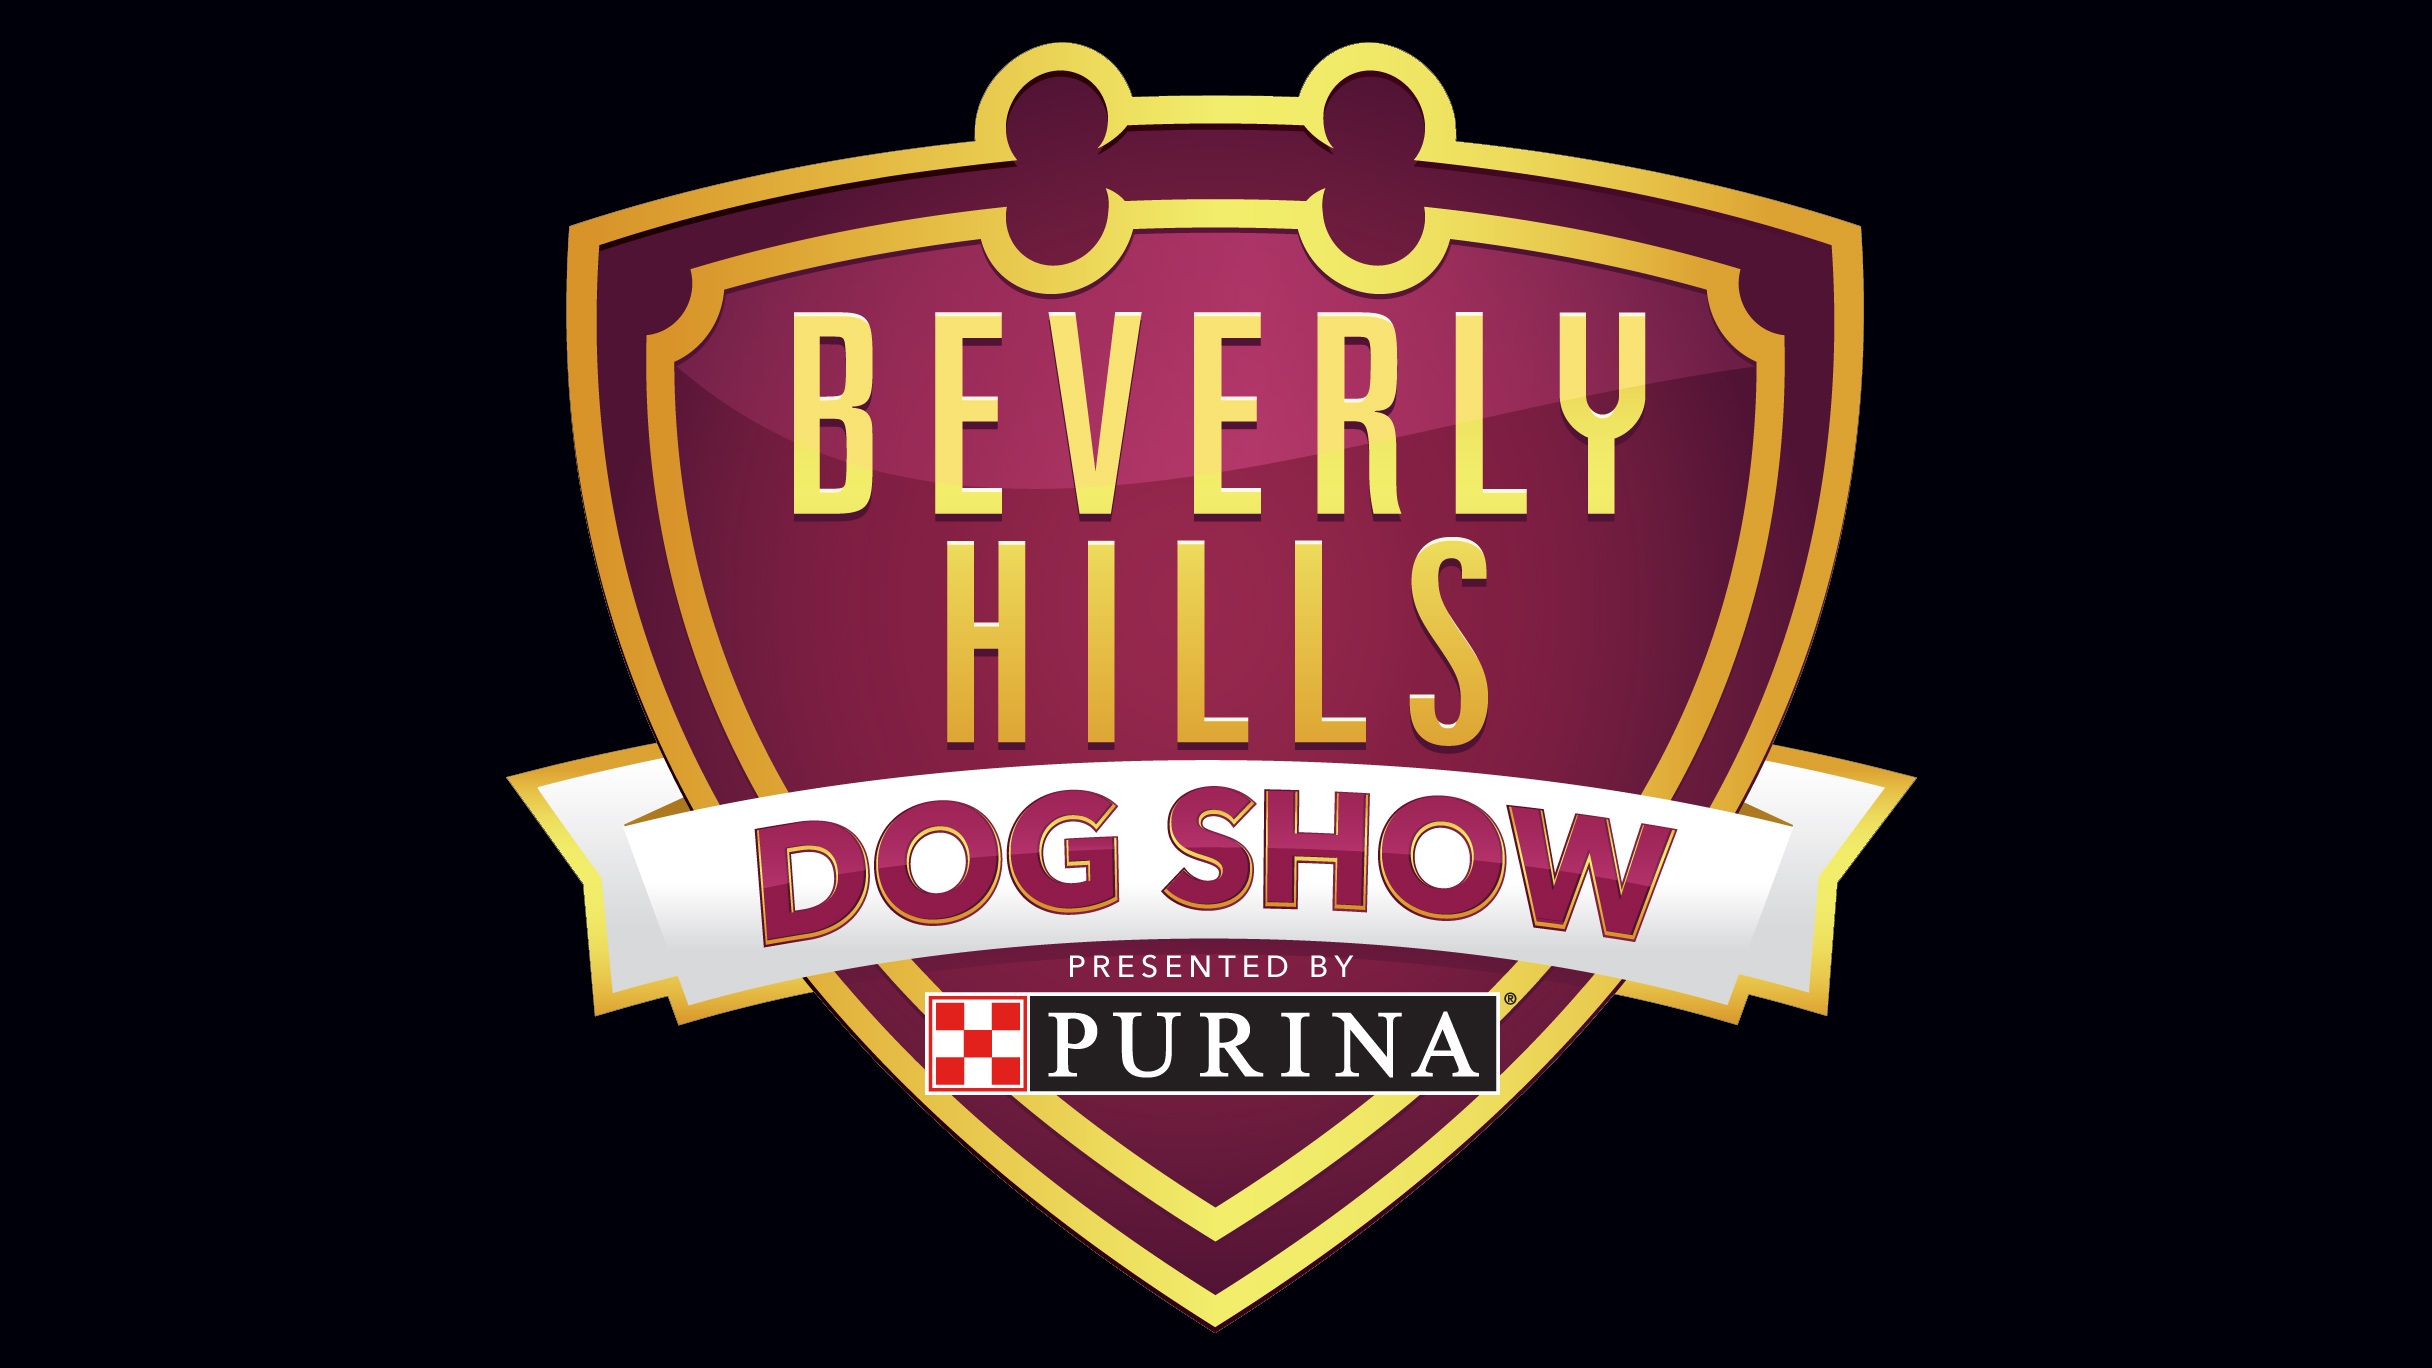 The Beverly Hills Dog Show Presented by Purina will air on April 1, Easter Sunday, on USA at 6/5 p.m. ET/CT.